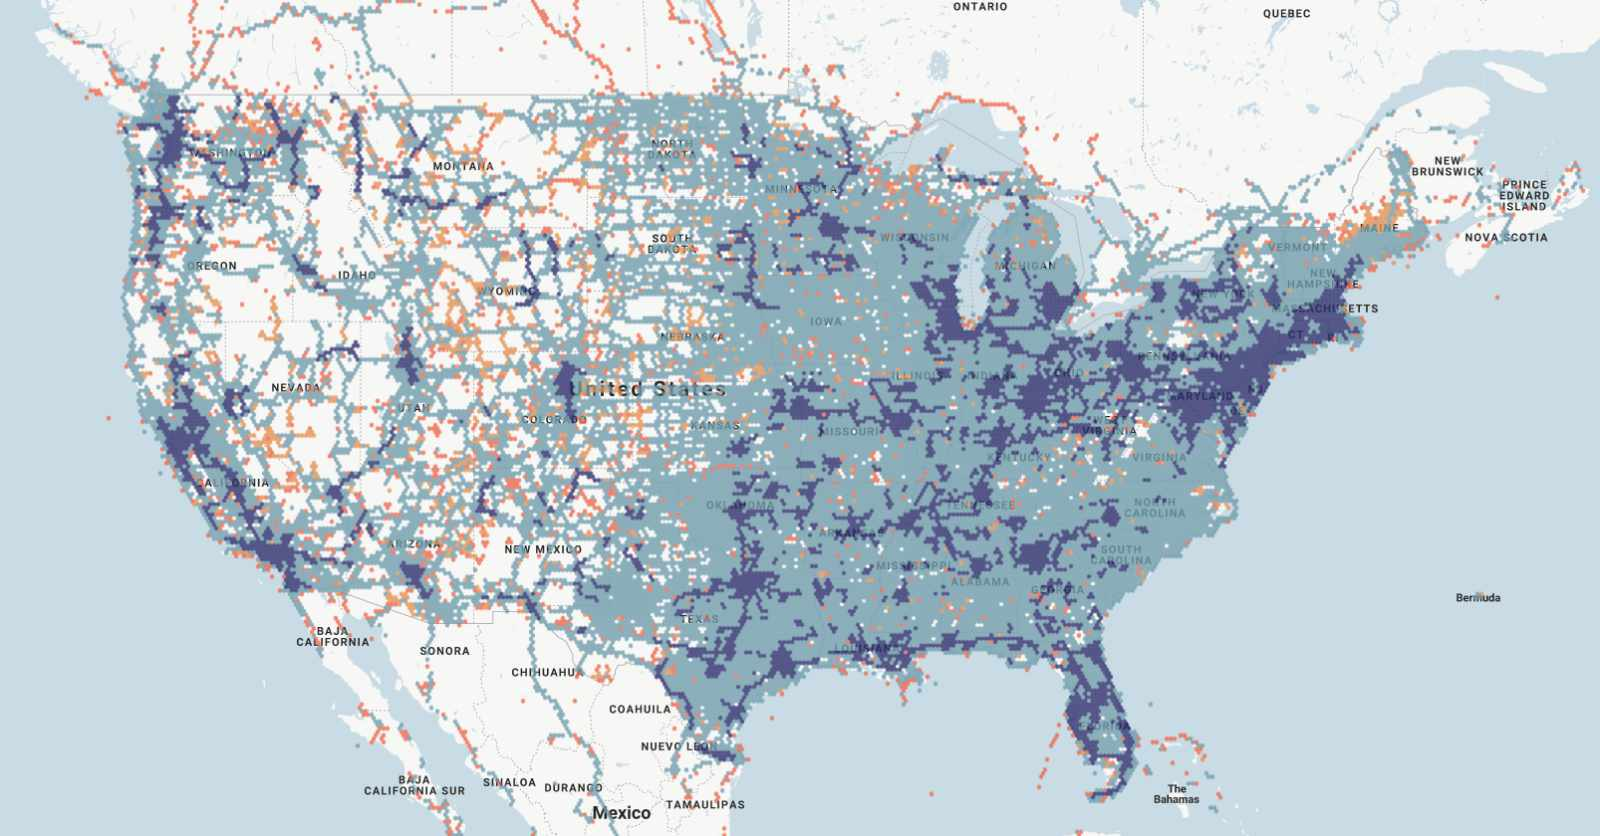 AT&T 4G LTE and 5G coverage map as reported by RootMetrics